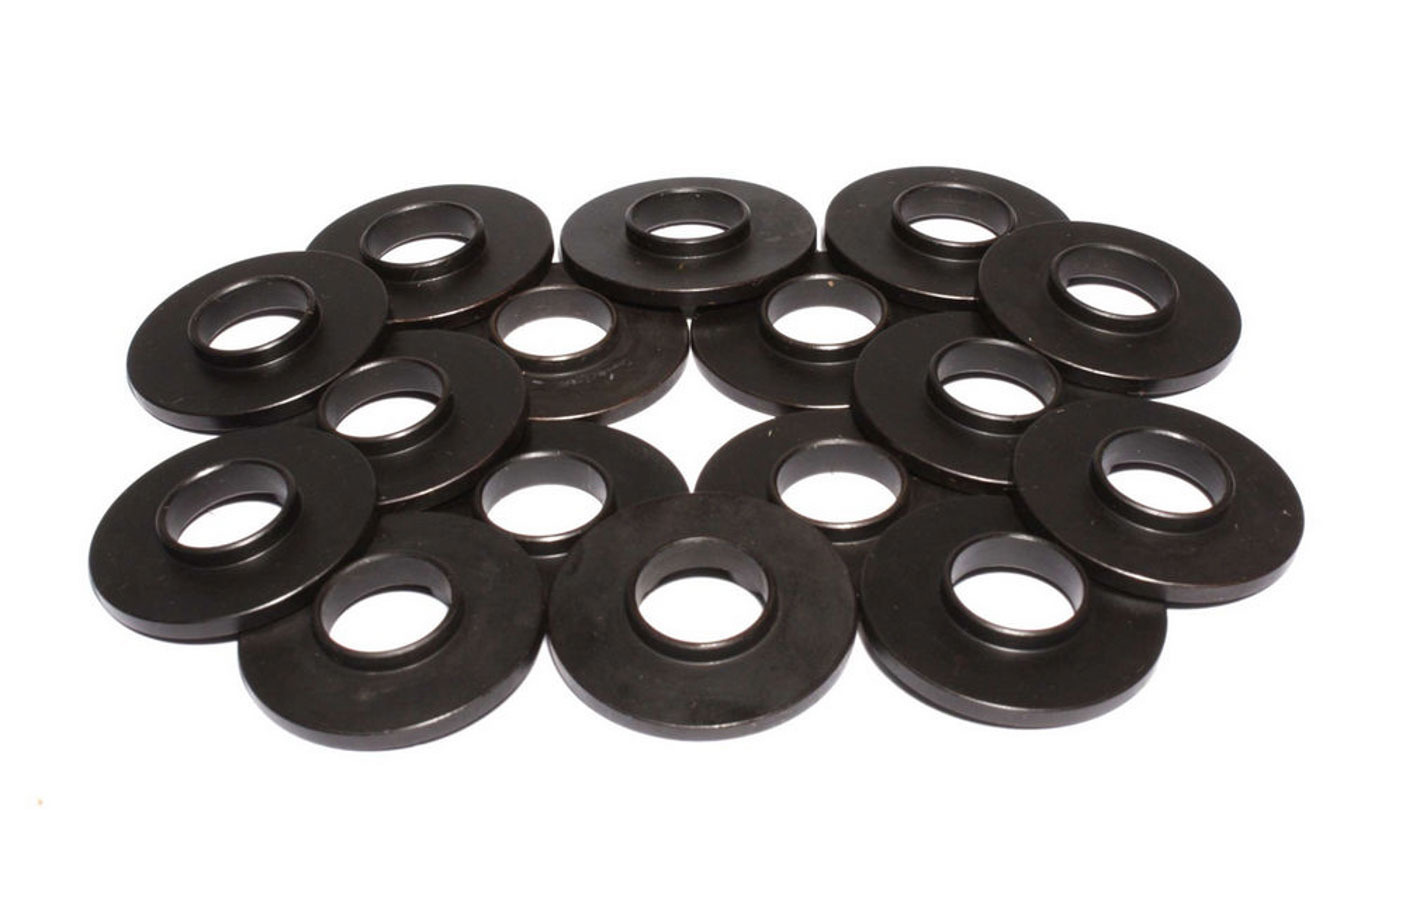 Comp Cams 4862-16 Valve Spring Locator, Inside, 0.060 in Thick, 1.270 in OD, 0.520 in ID, 0.650 in Spring ID, Steel, Set of 16